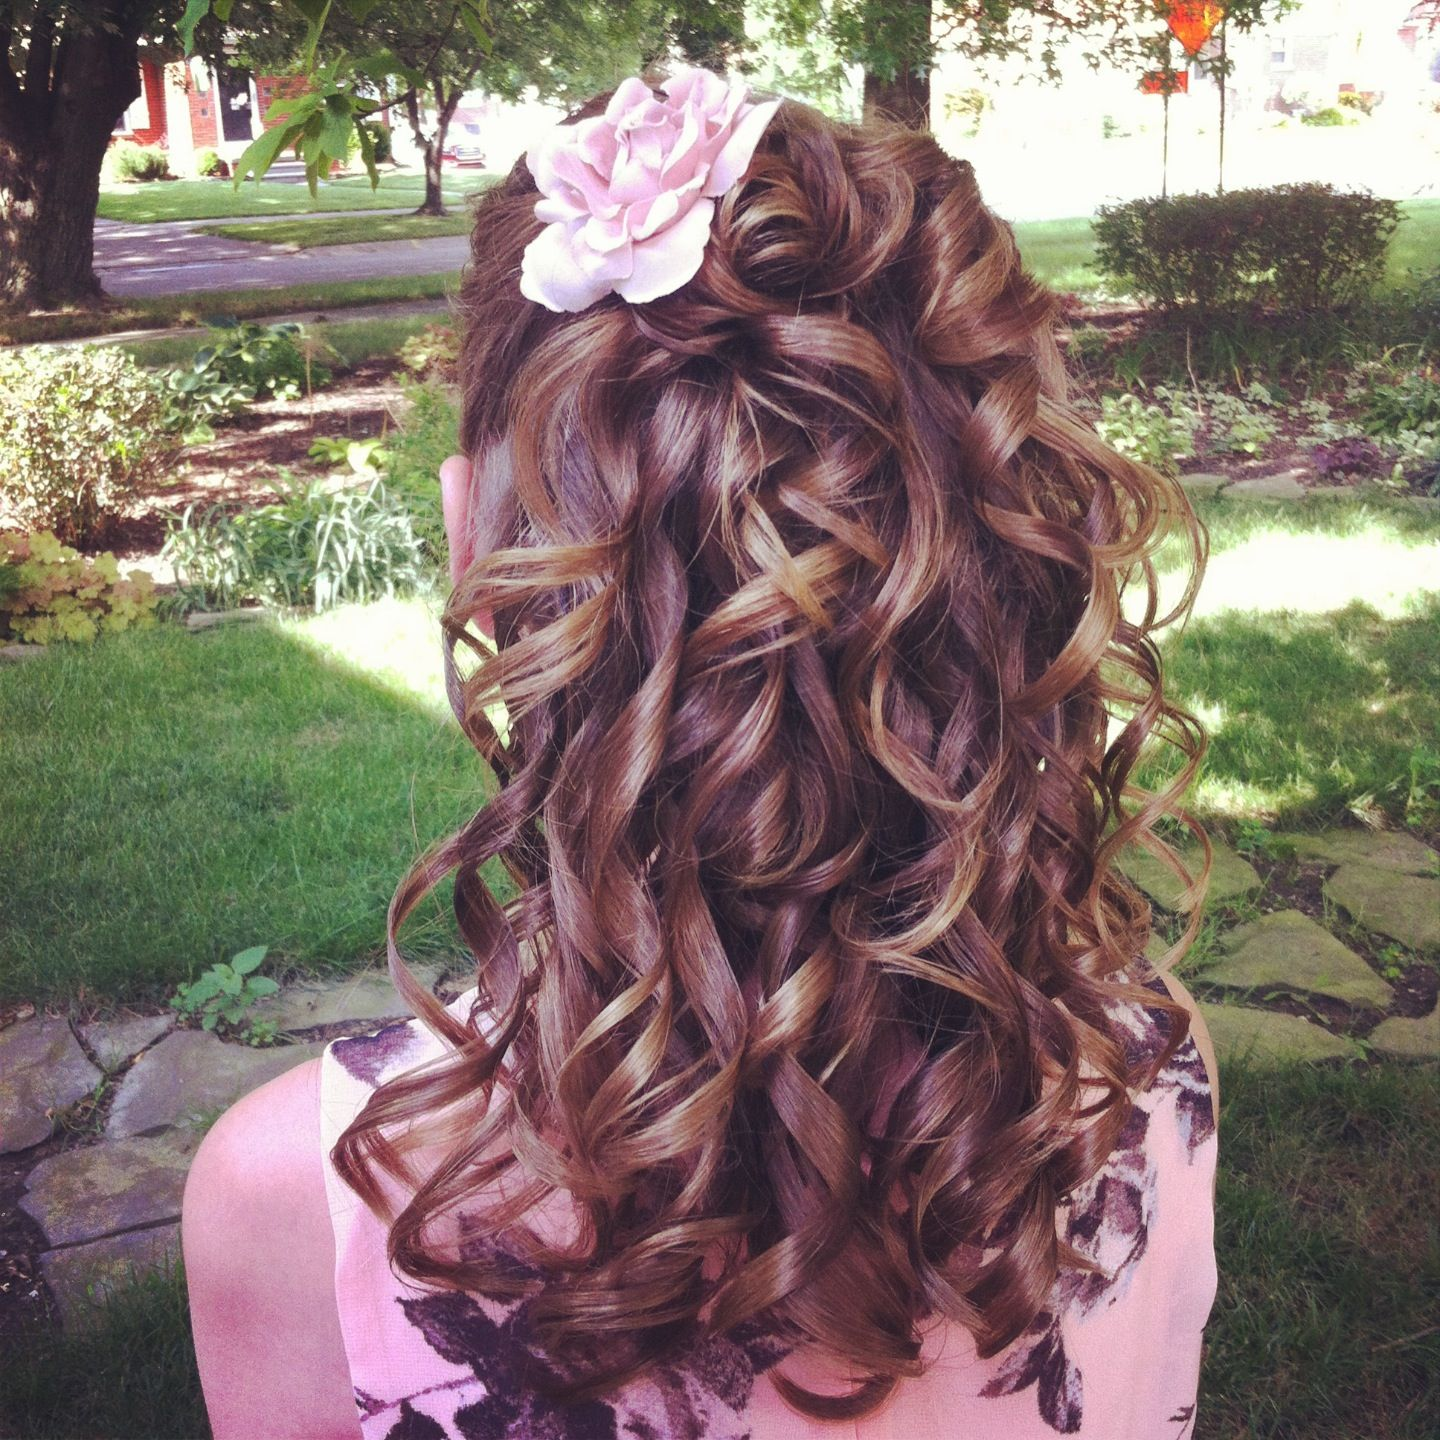 Pin By Nina Dlp On Barn Party Pageant Hair Kids Hairstyles Picture Day Hair